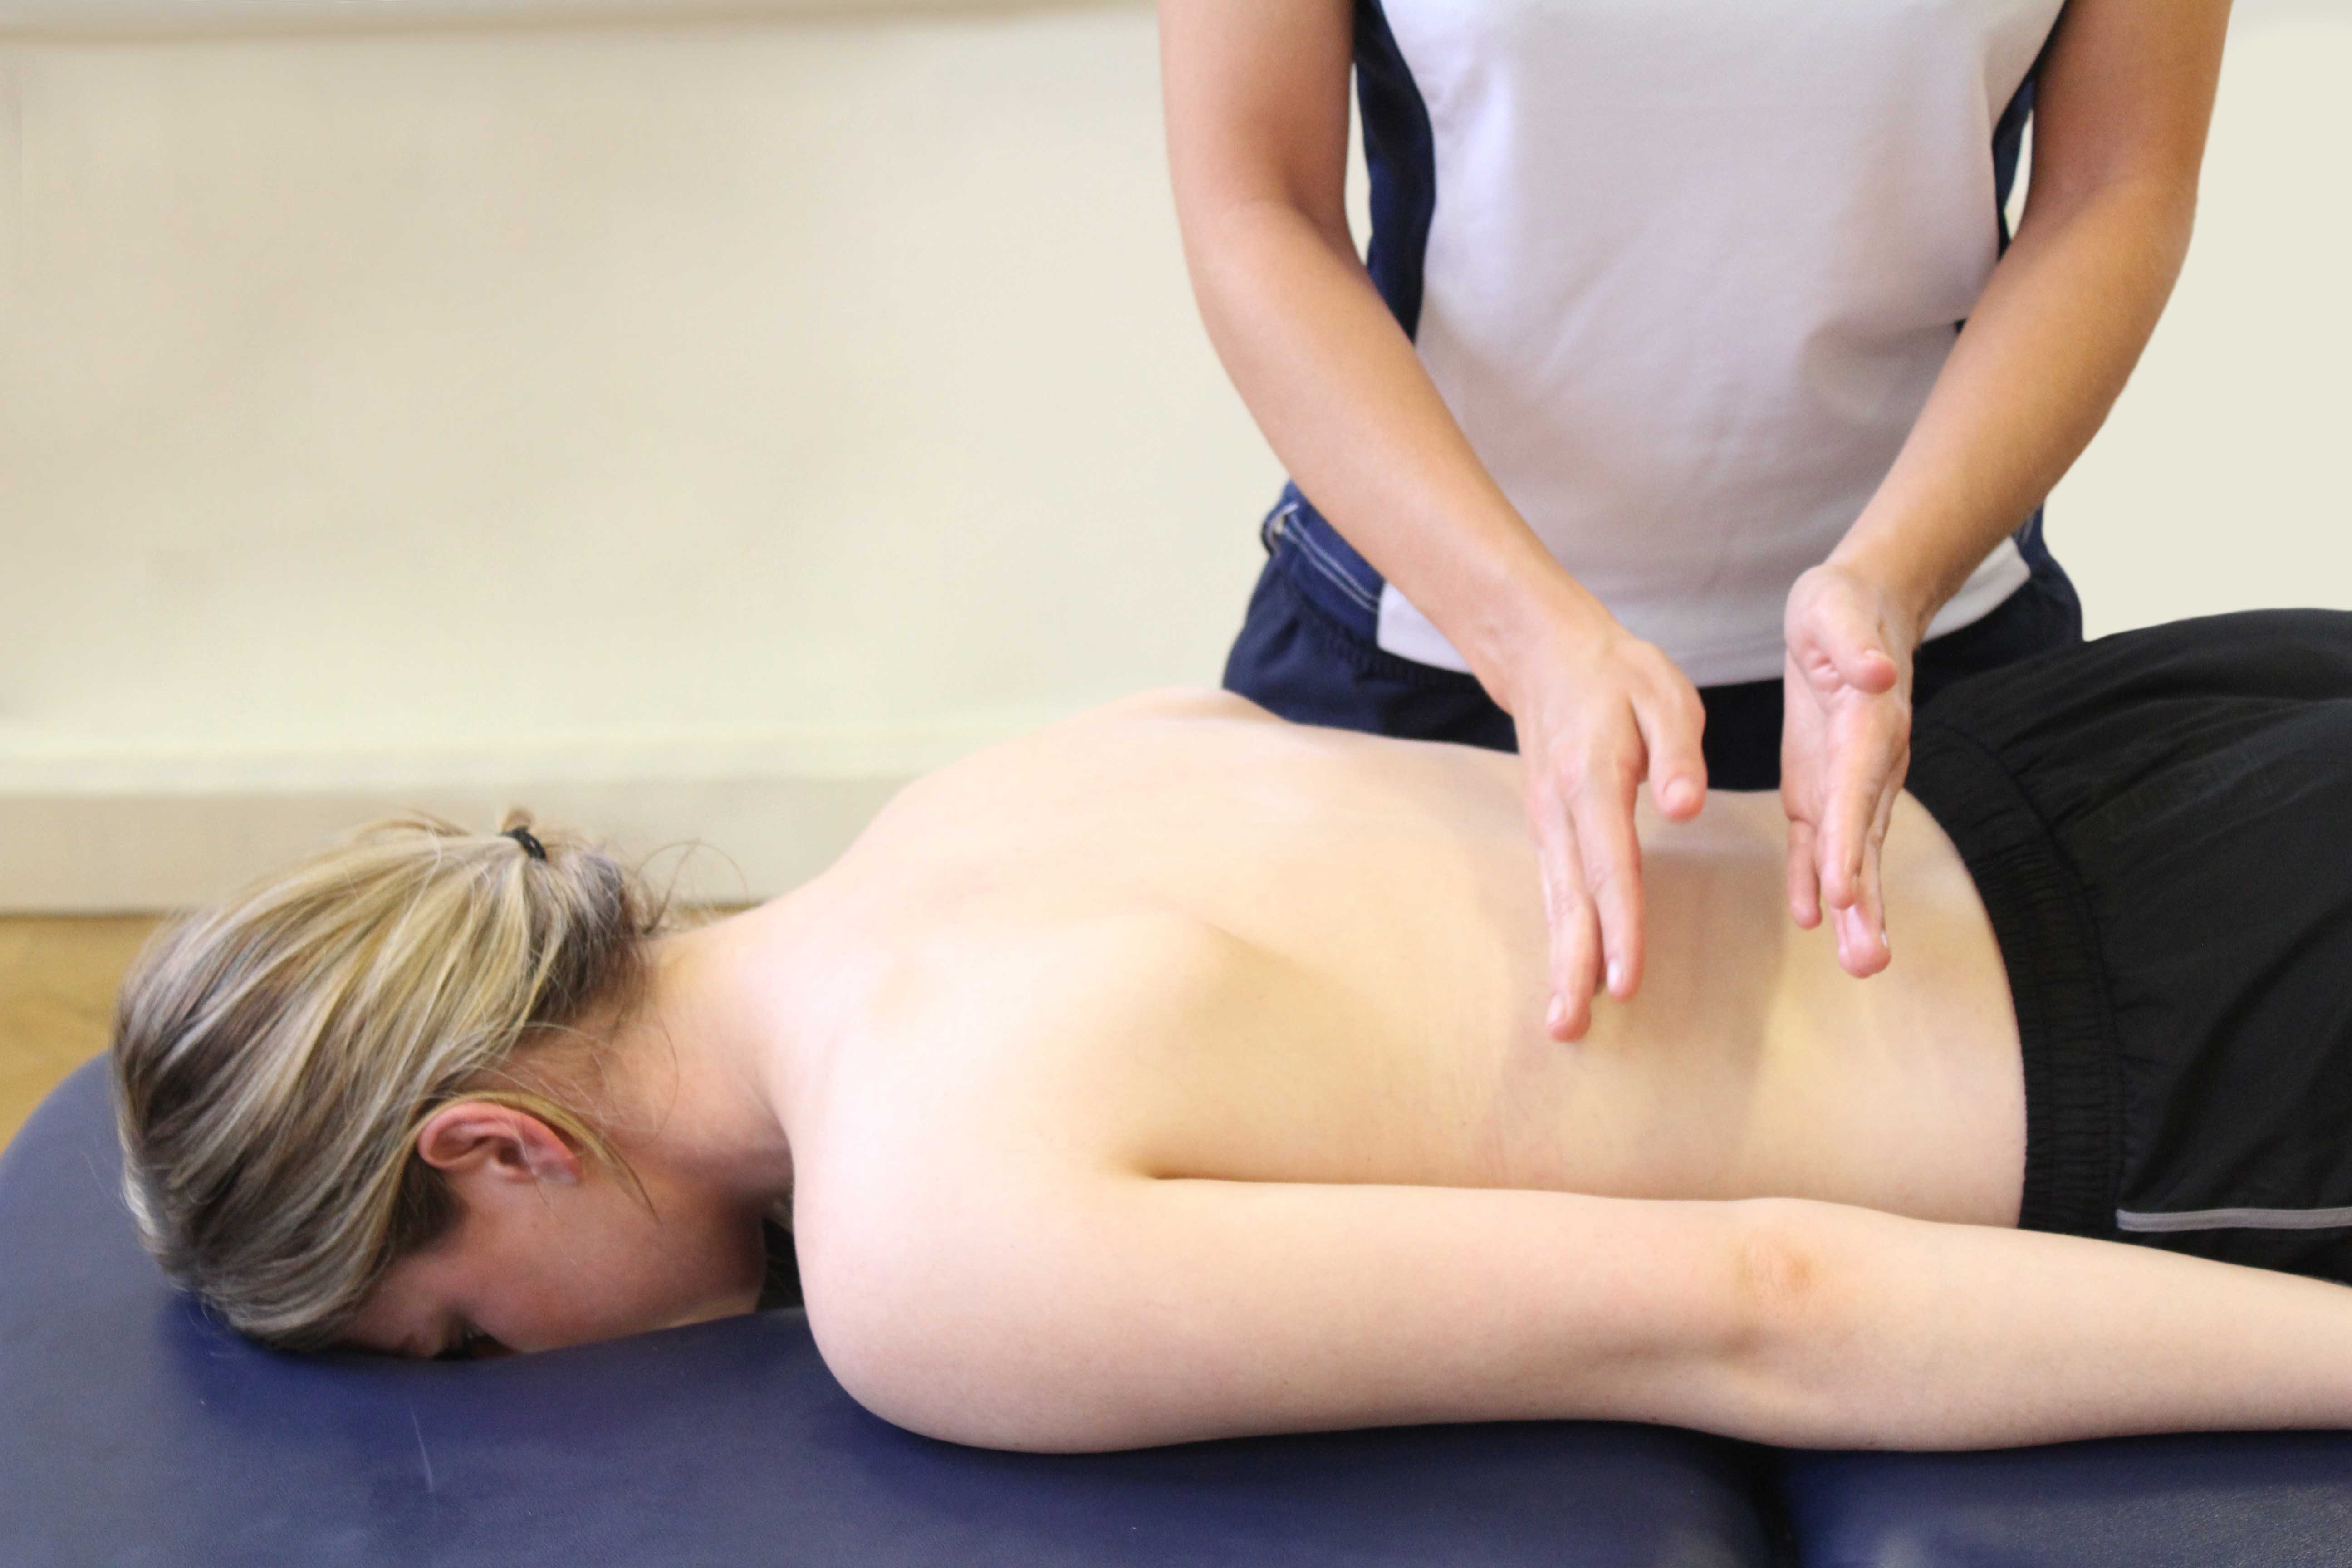 Hacking purcussion soft tissue massage conducted by an experienced therapist